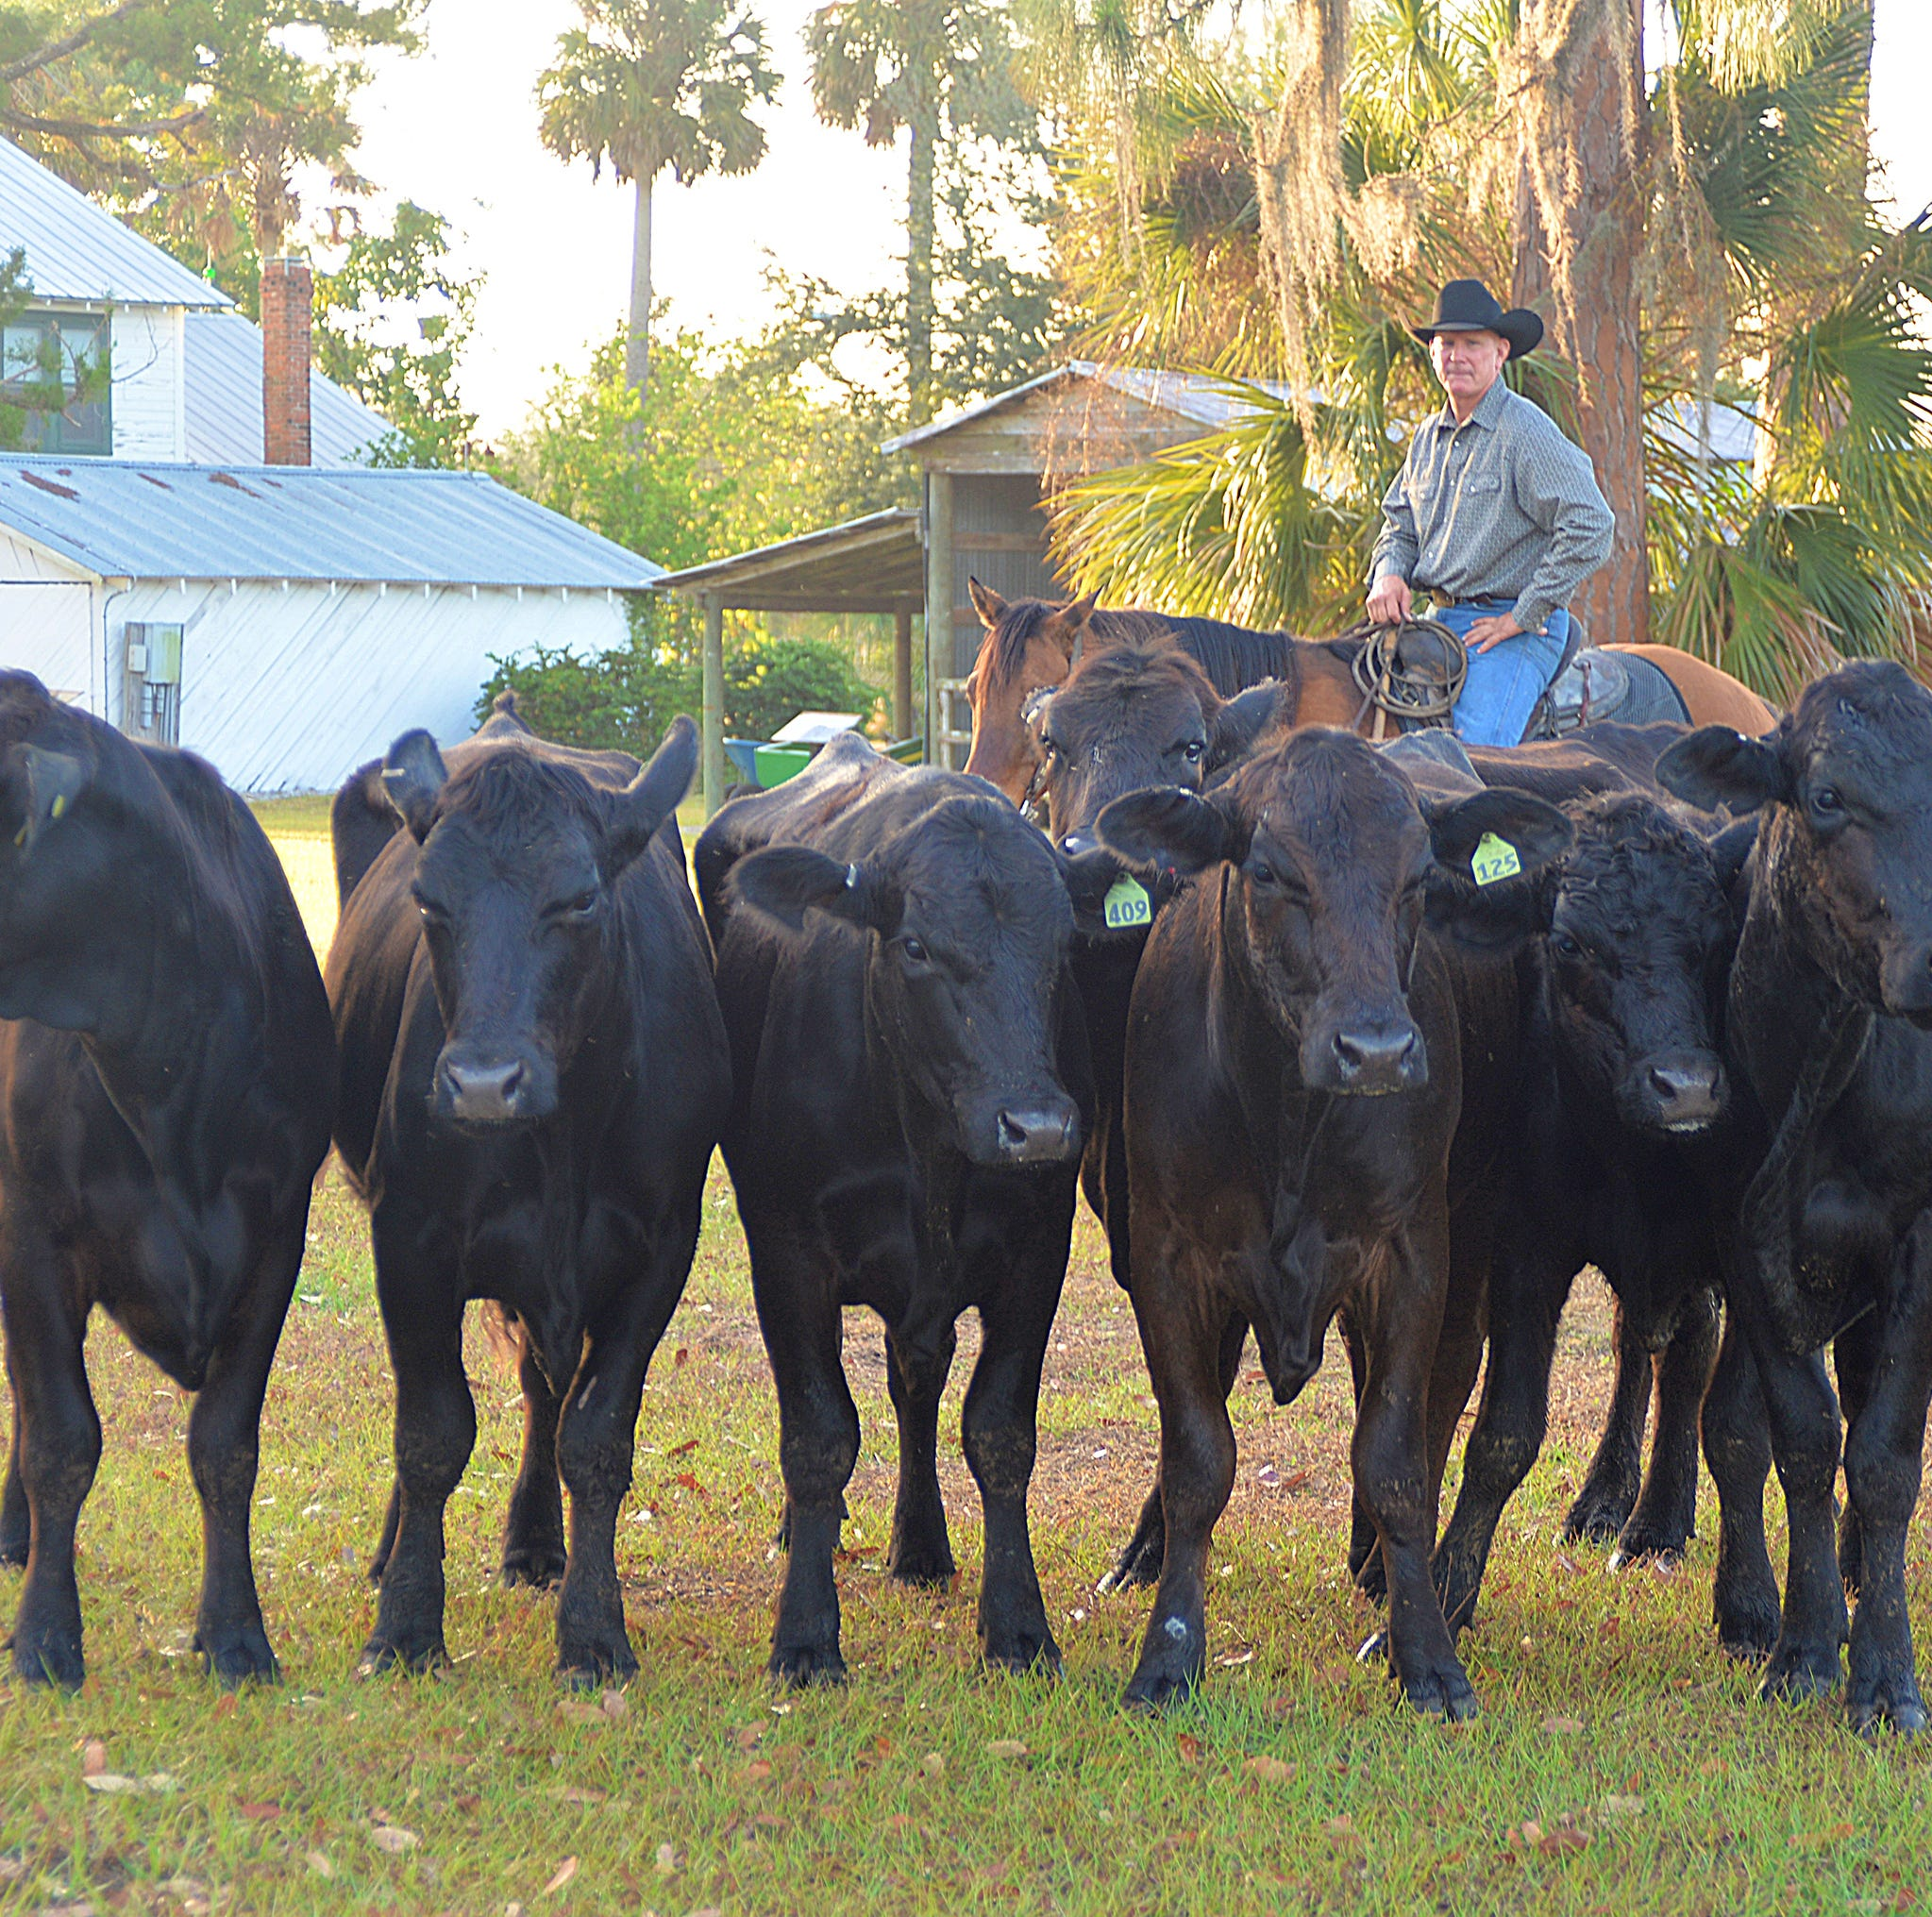 A cowboy from the nation's first Wild West and more at Paradise Coast stories weekend